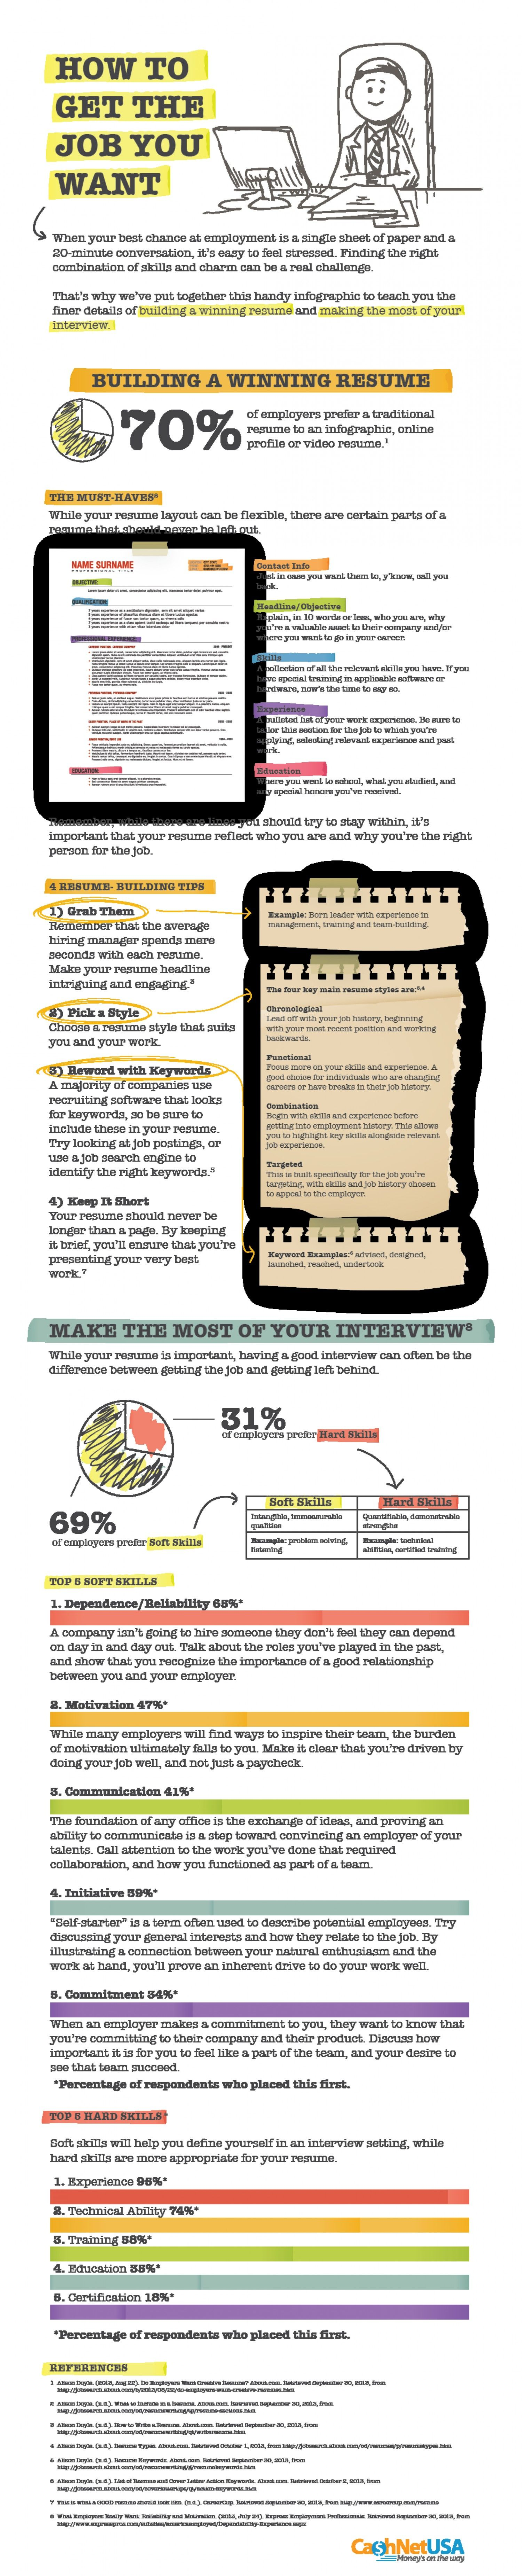 how do i format my resume get all your questions answered in this career building infographic - Resume Writing Questions